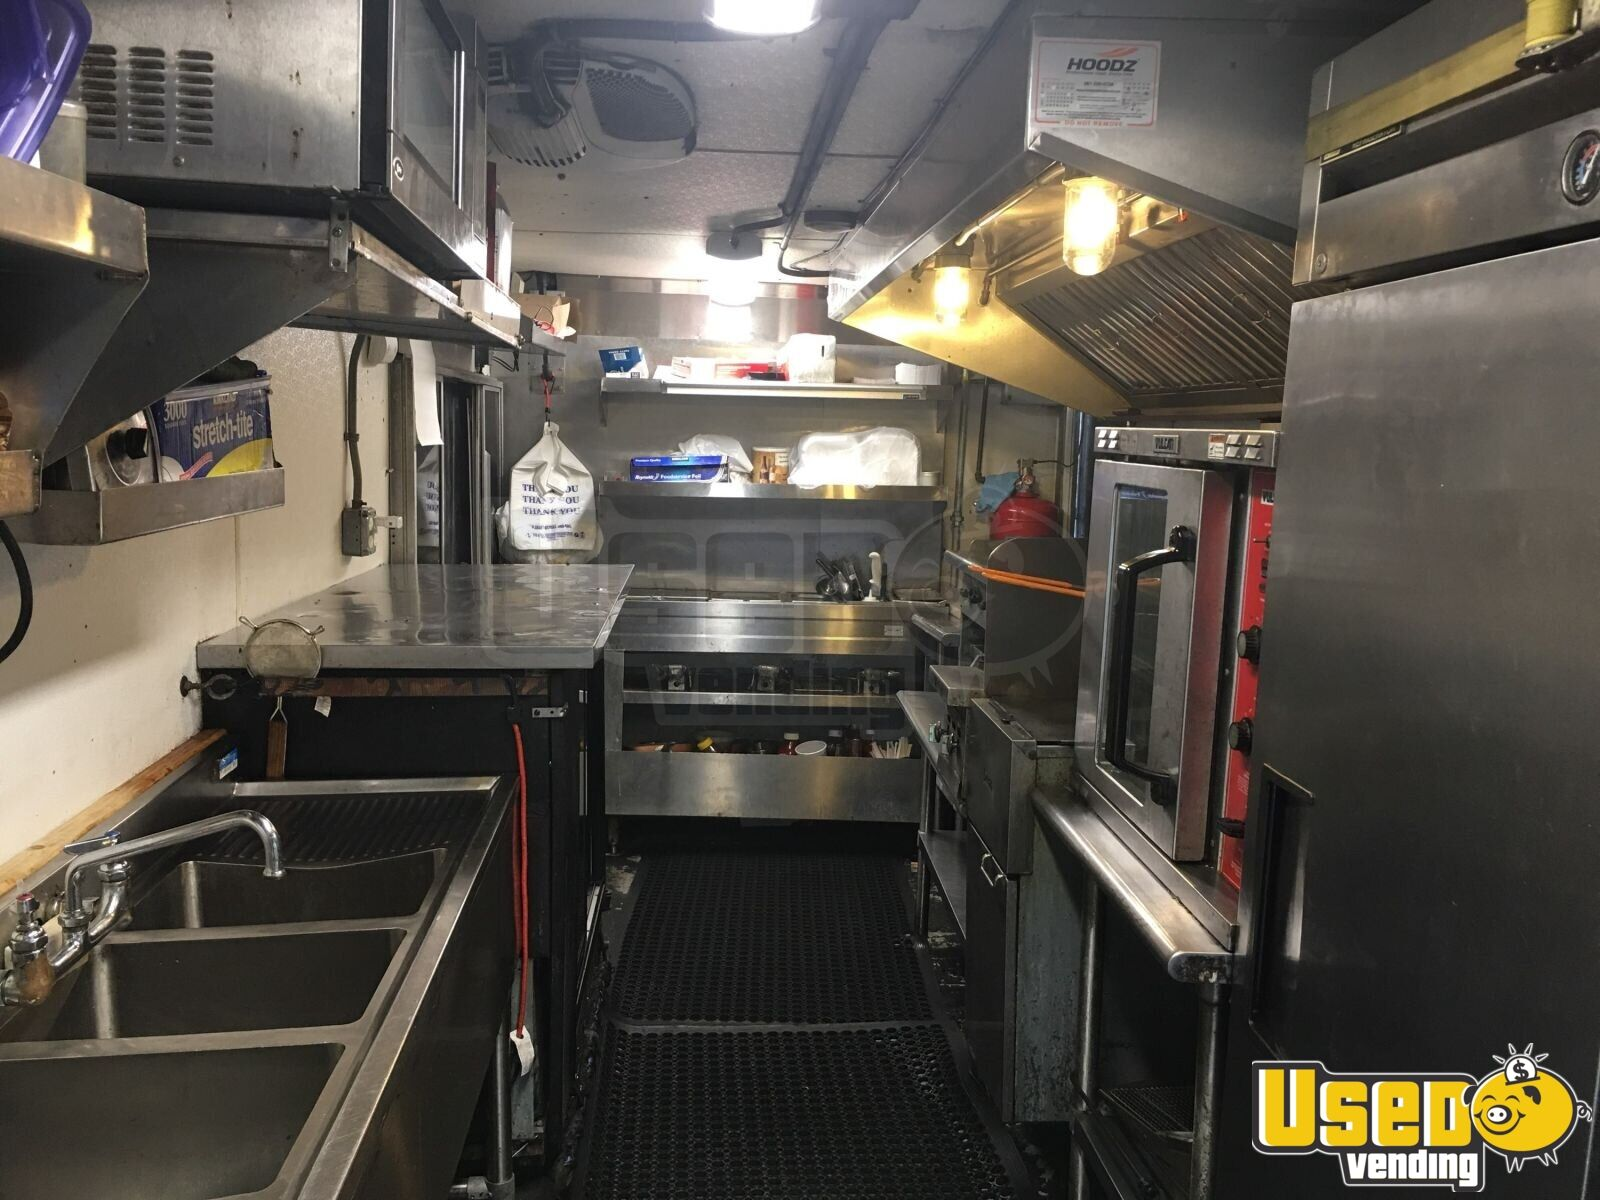 2001 Chevy Workhorse All-purpose Food Truck Generator Florida Gas Engine for Sale - 7